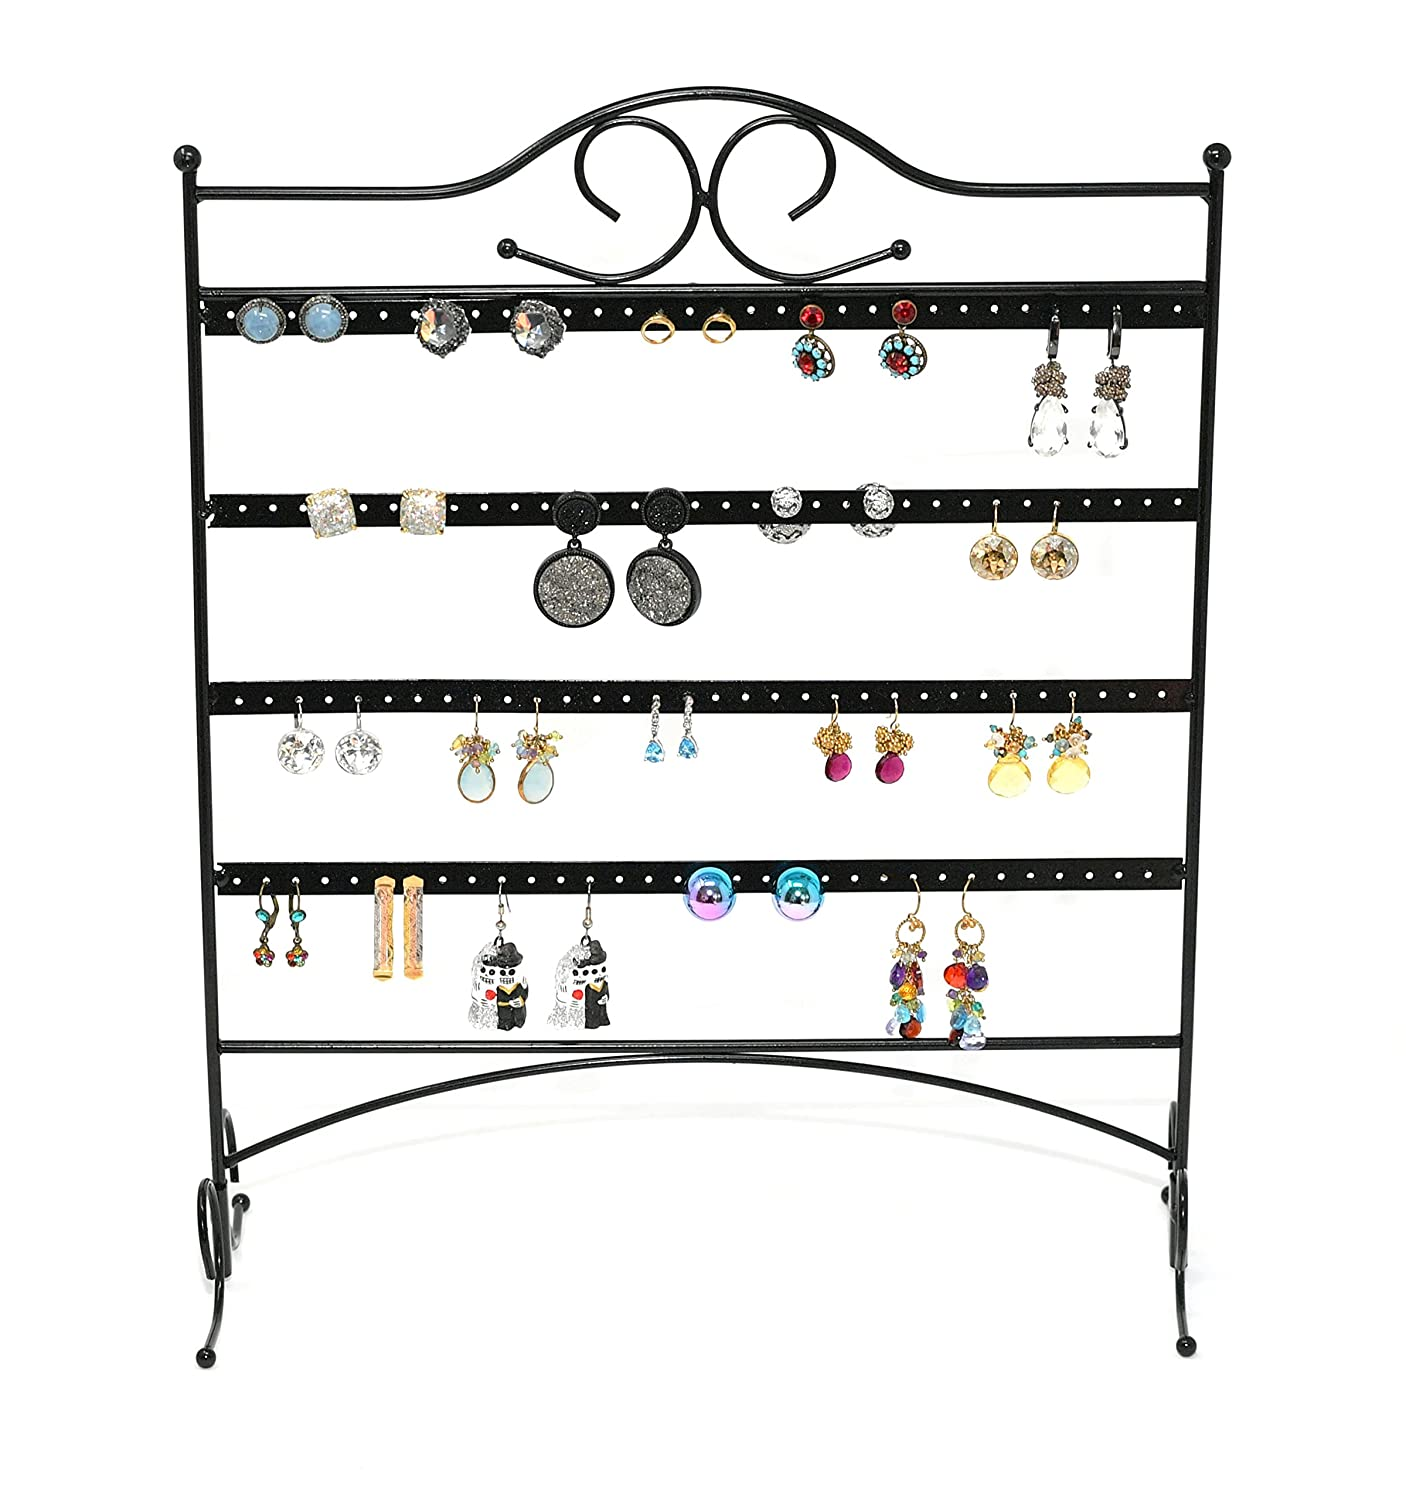 ARAD Metal Jewelry Tree, Holder Organizer-Hanging Jewelry Display for Earrings & Other Piercings